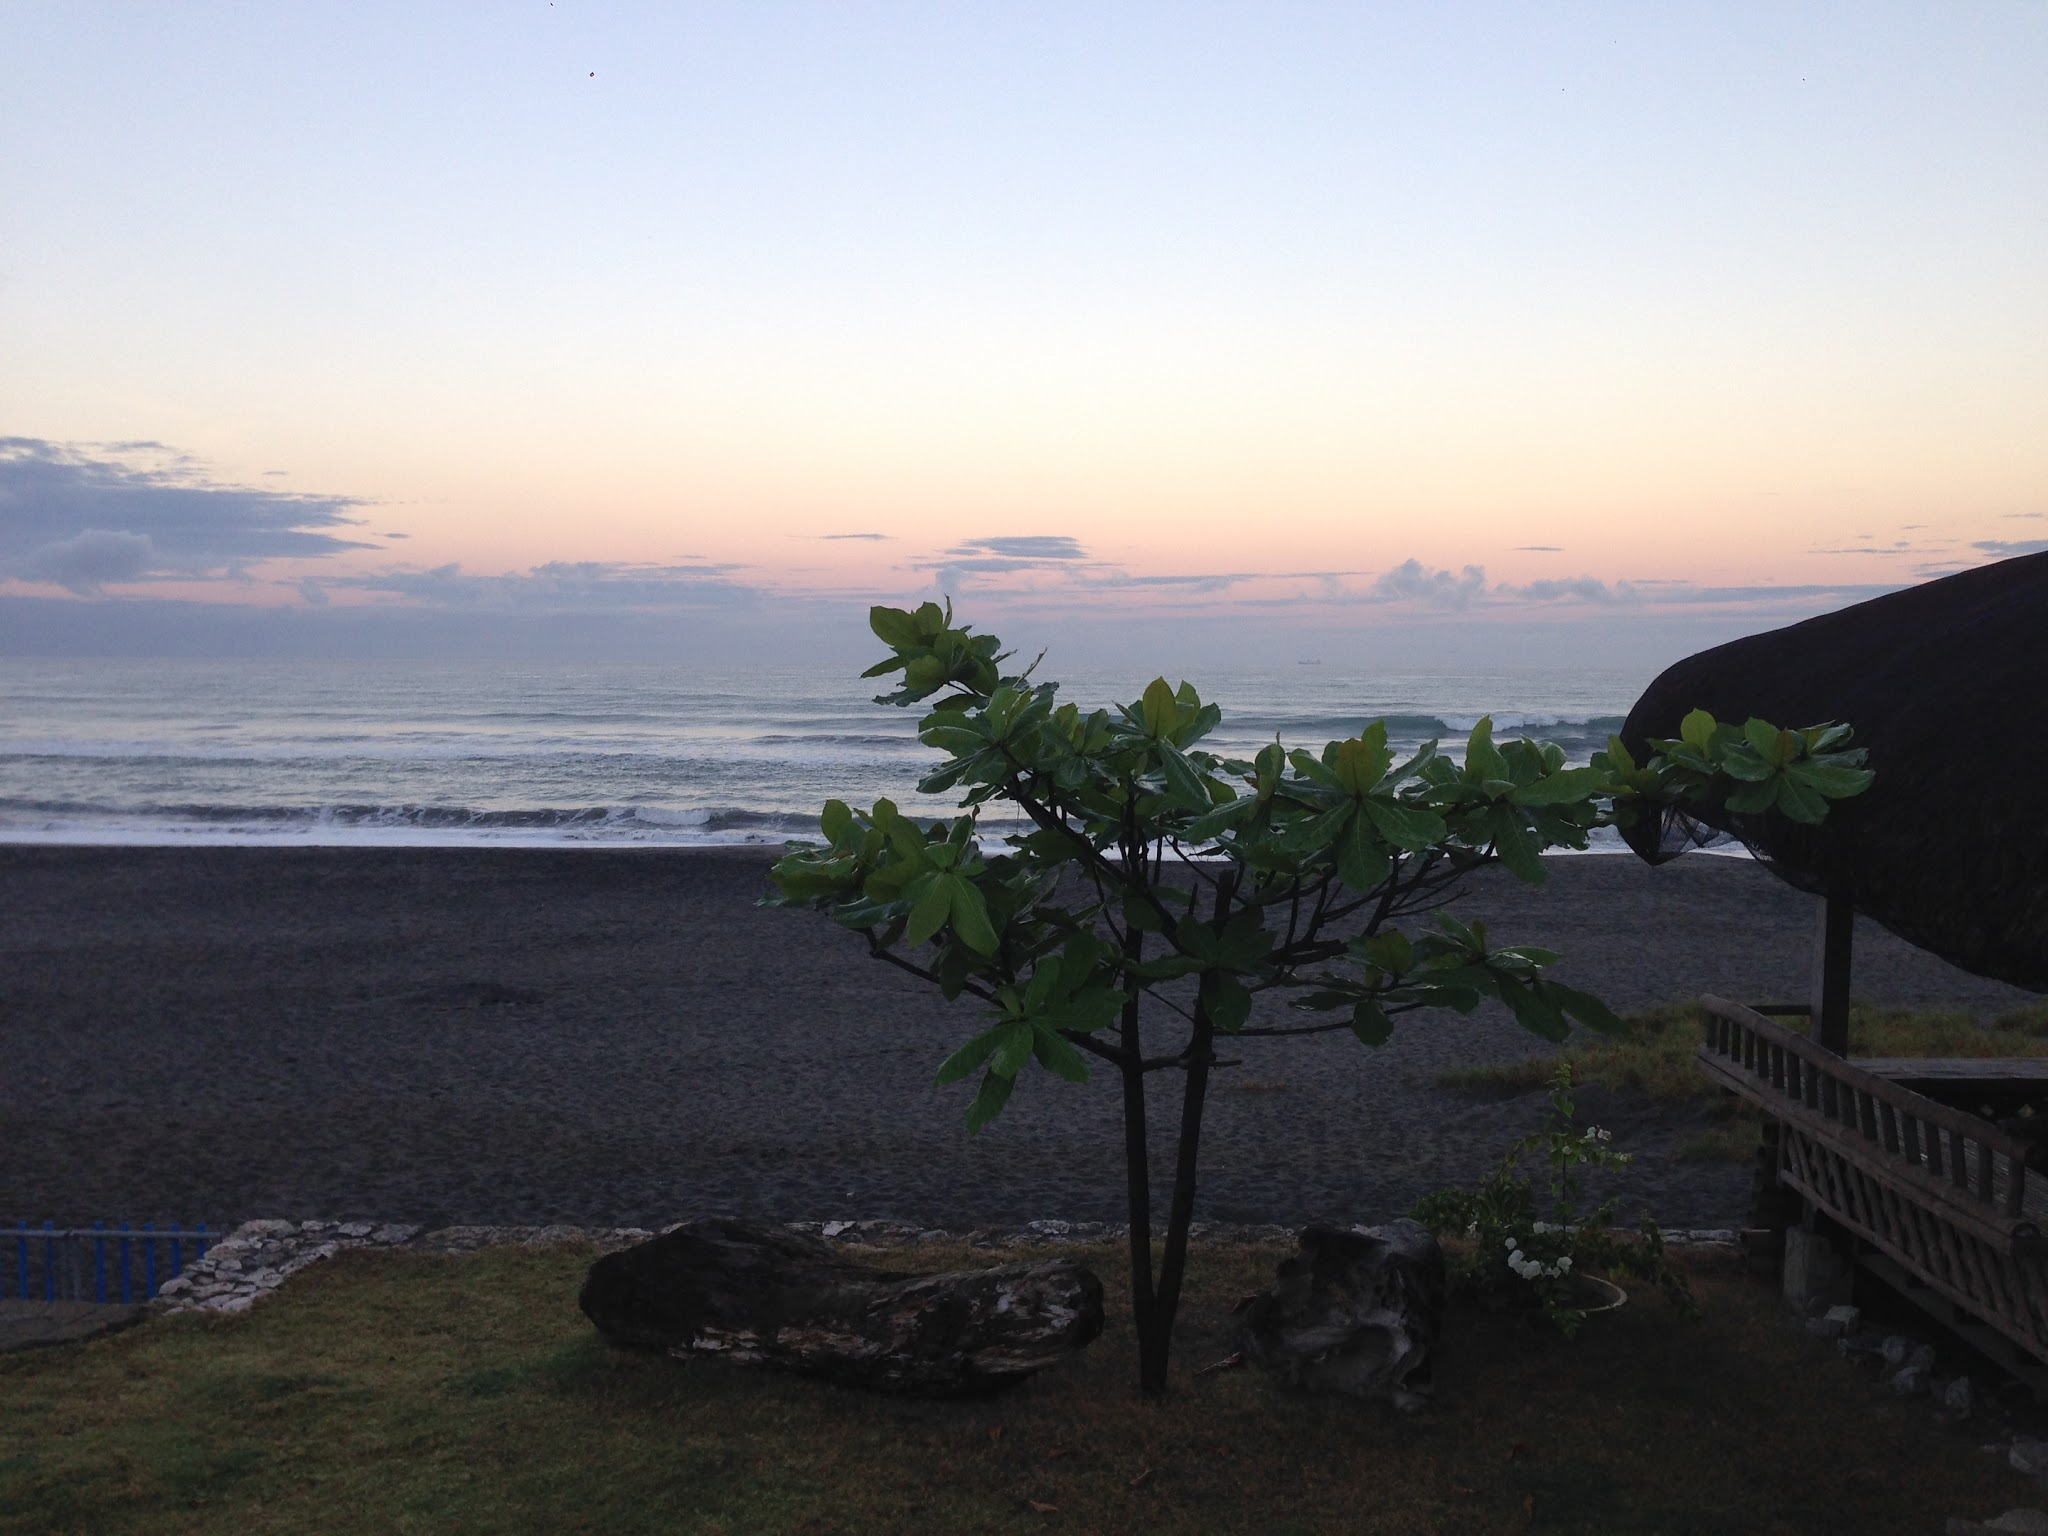 View from the house at dusk (the photos of Bacnotan beach above are from the same view)